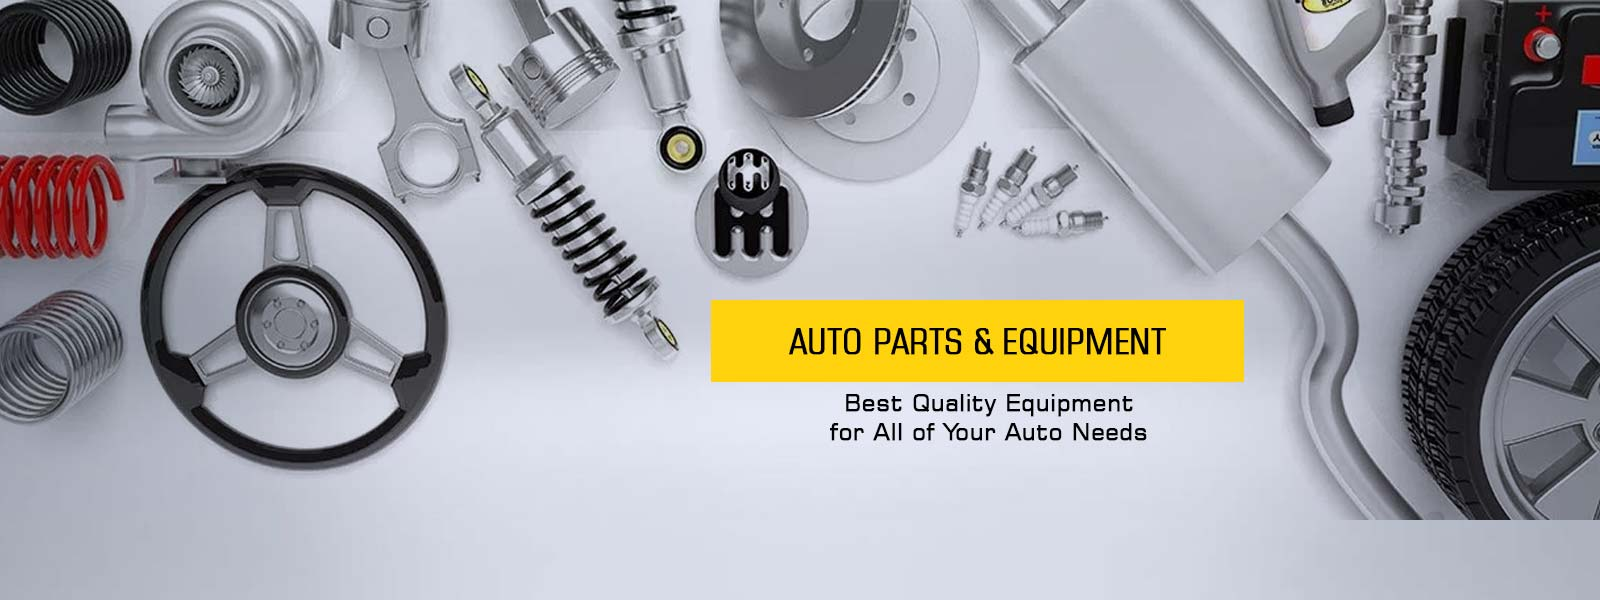 Auto Parts And Equipment Manufacturer, Exporters and Suppliers in Azerbaijan